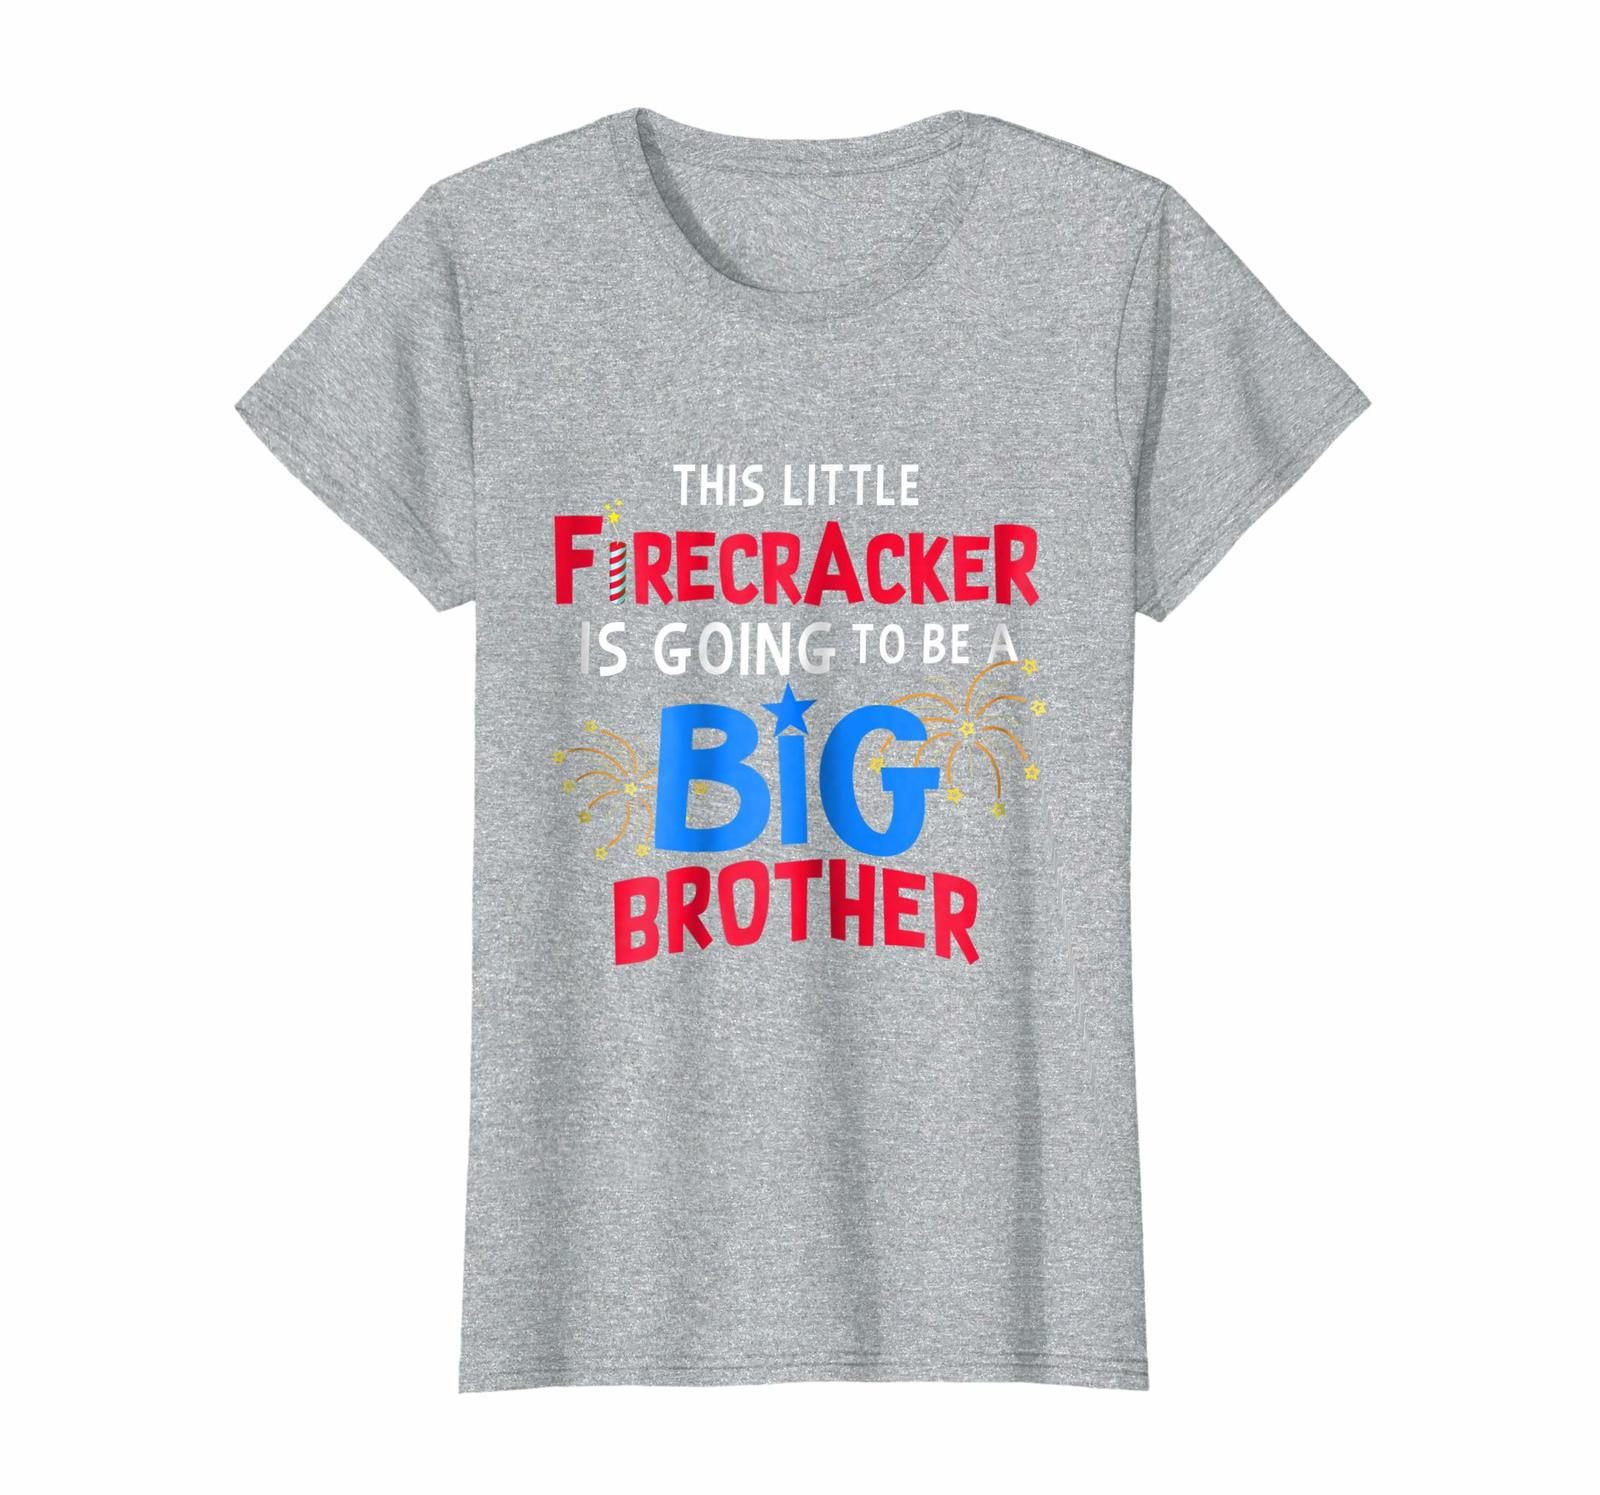 Brother Shirts - This Little Firecracker is going to be Big Brother 4th July Wow